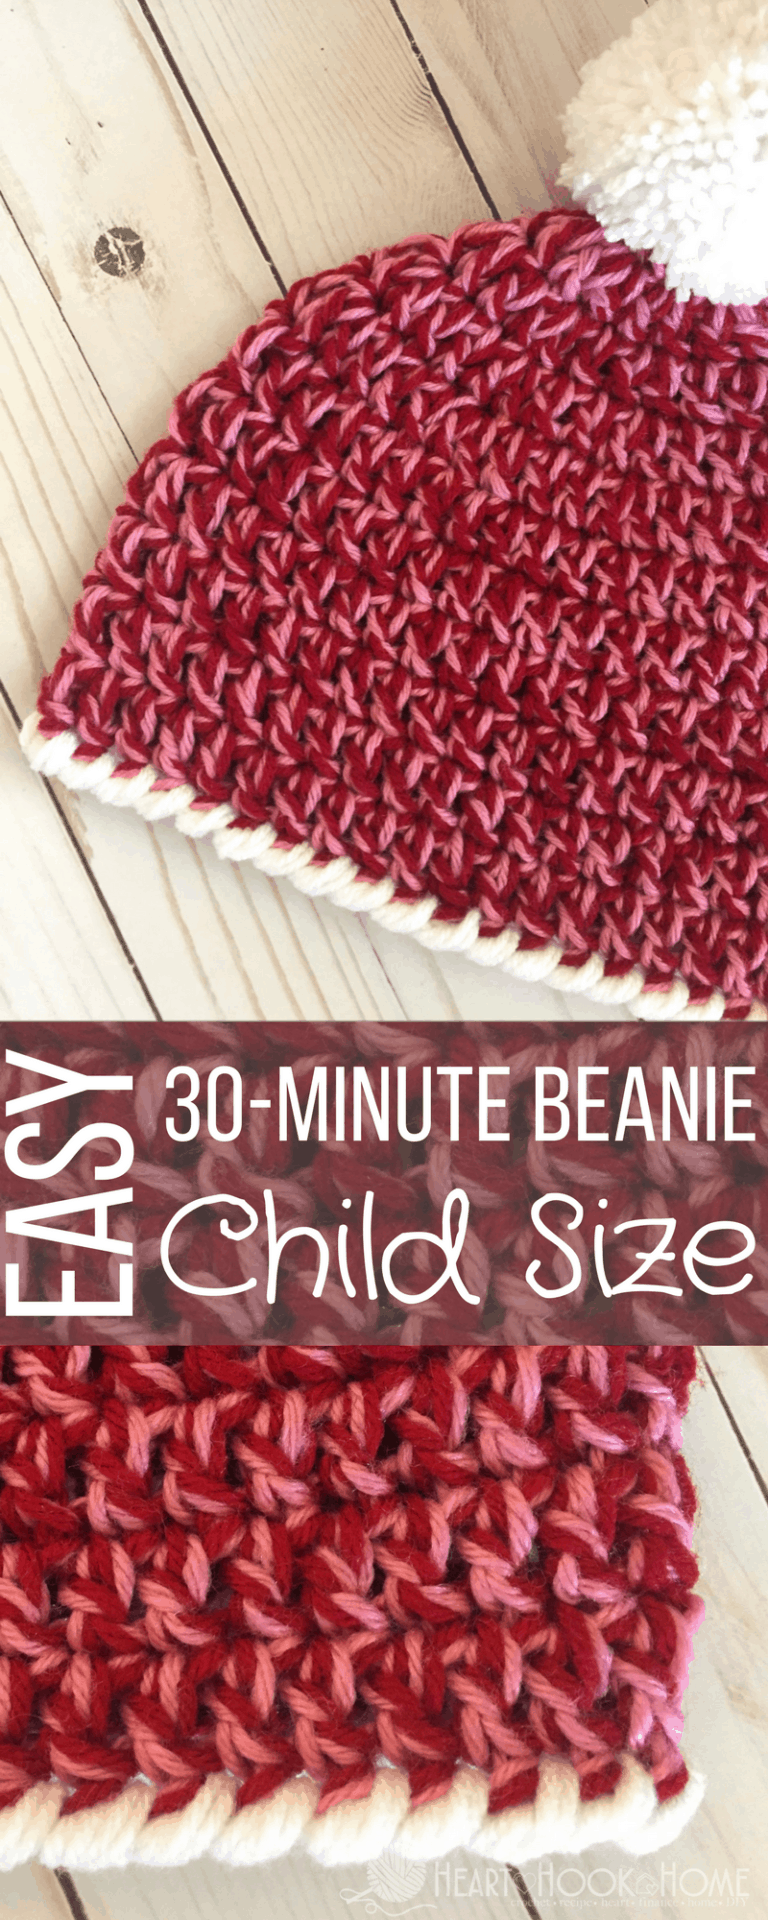 Easy Peasy And Fun: Child Size Easy Peasy 30-Minute Beanie Free Crochet Pattern